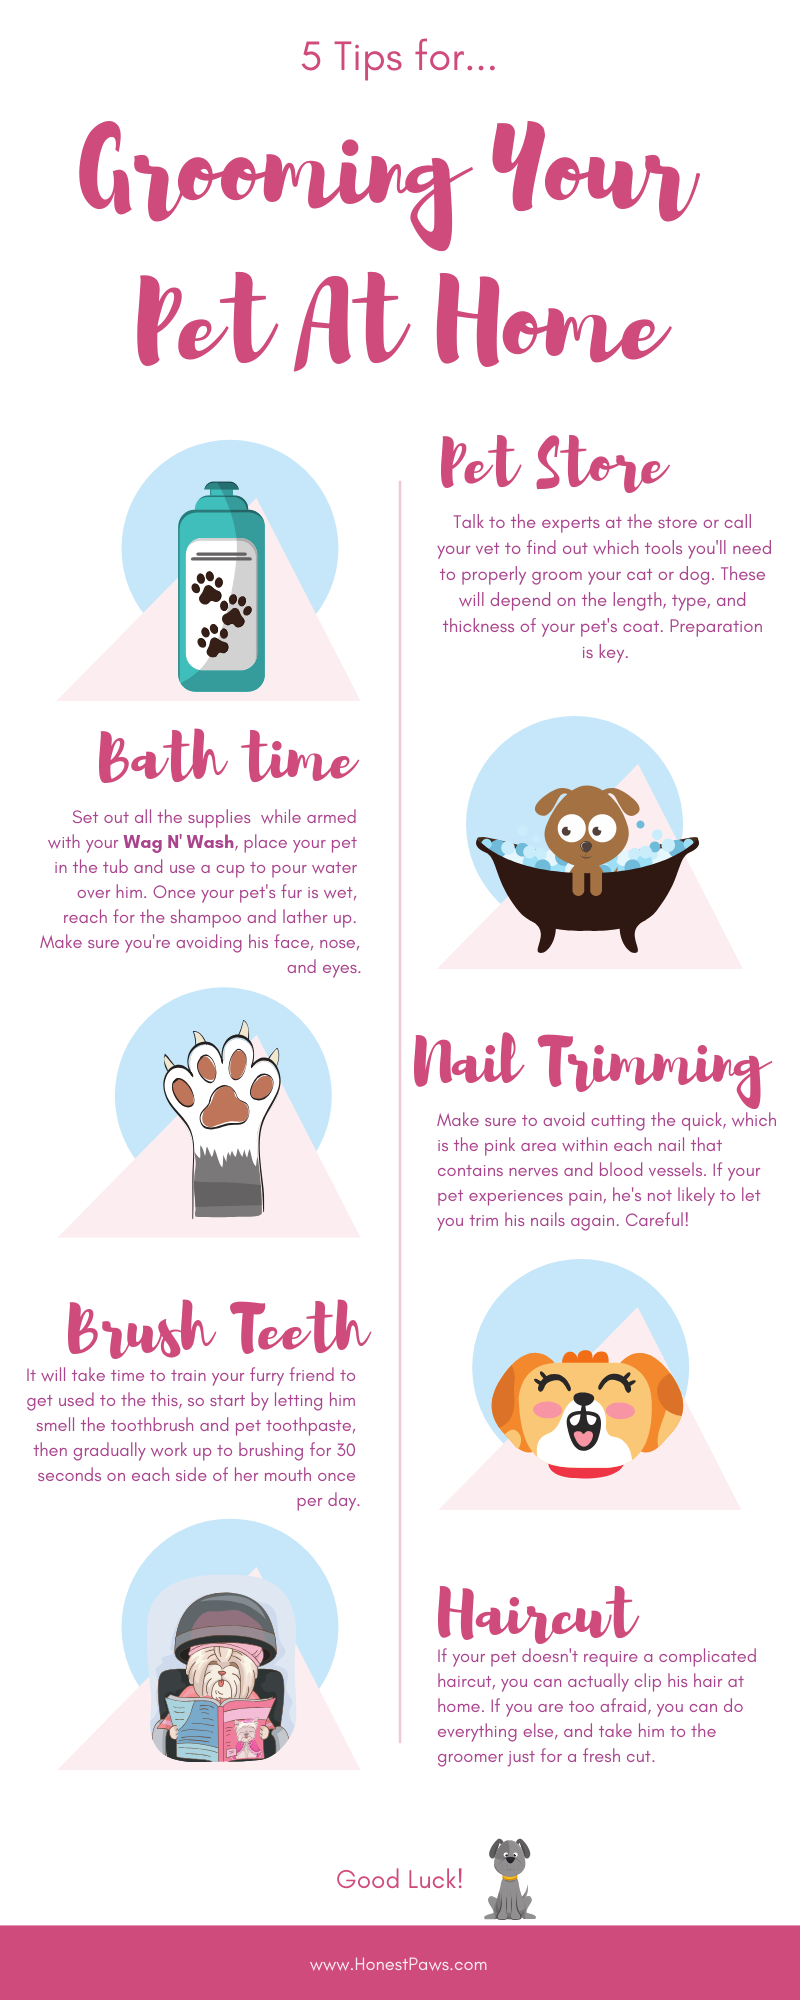 Grooming Your Pet At Home Honest Paws